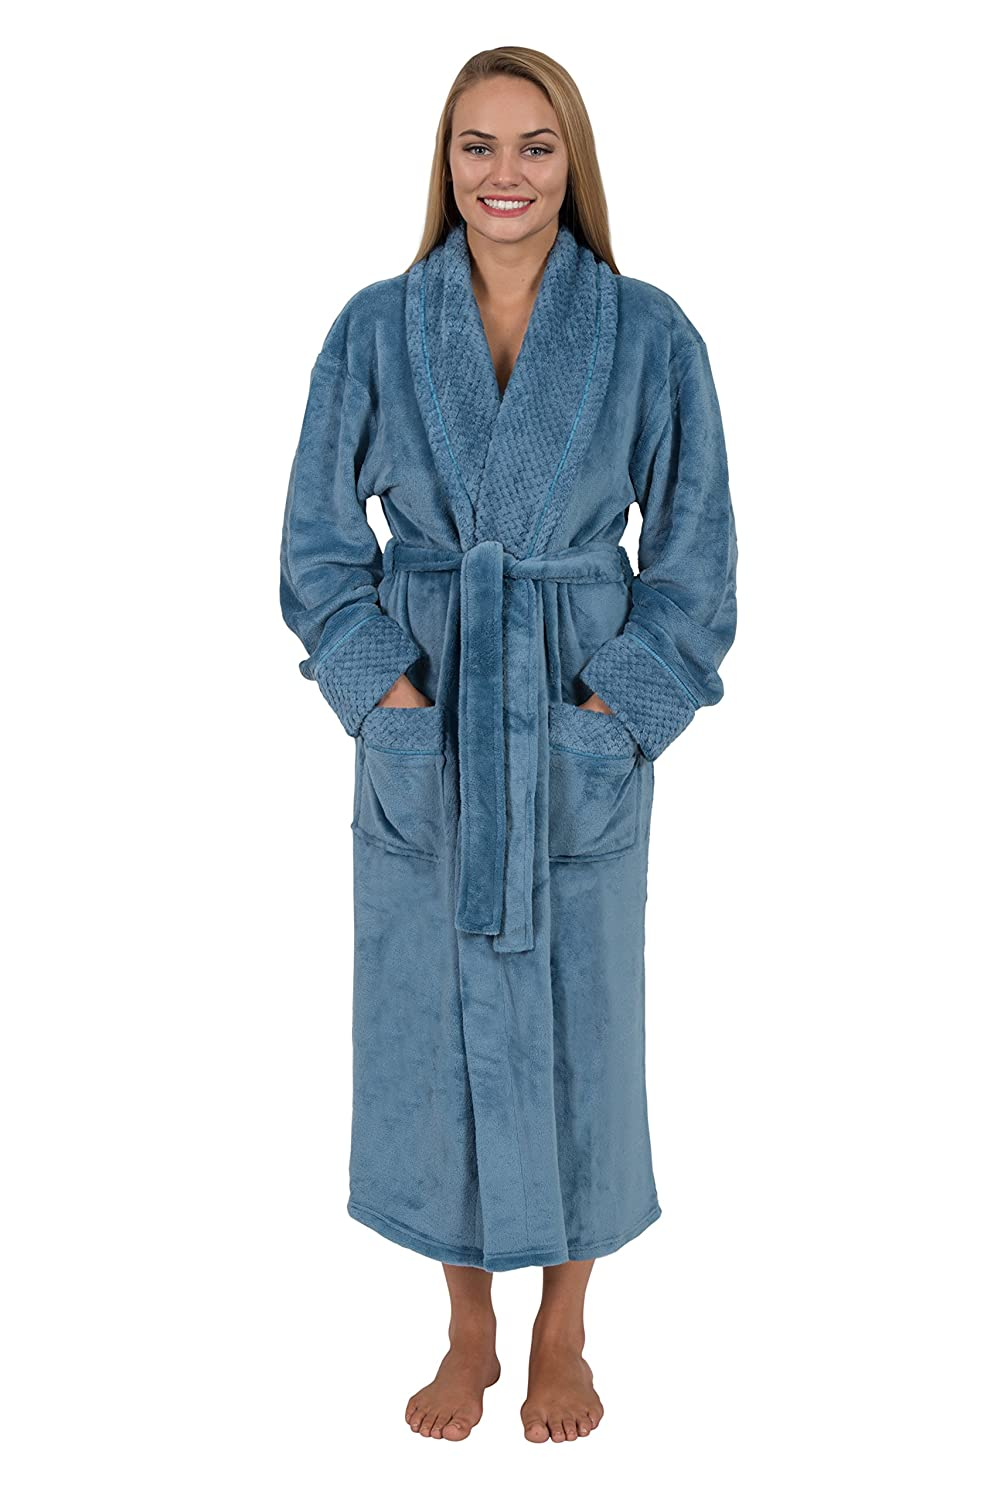 Women's Spa Style Full Length Plush Robe with Velvet Collar & Cuffs Plus Sizes Avail.